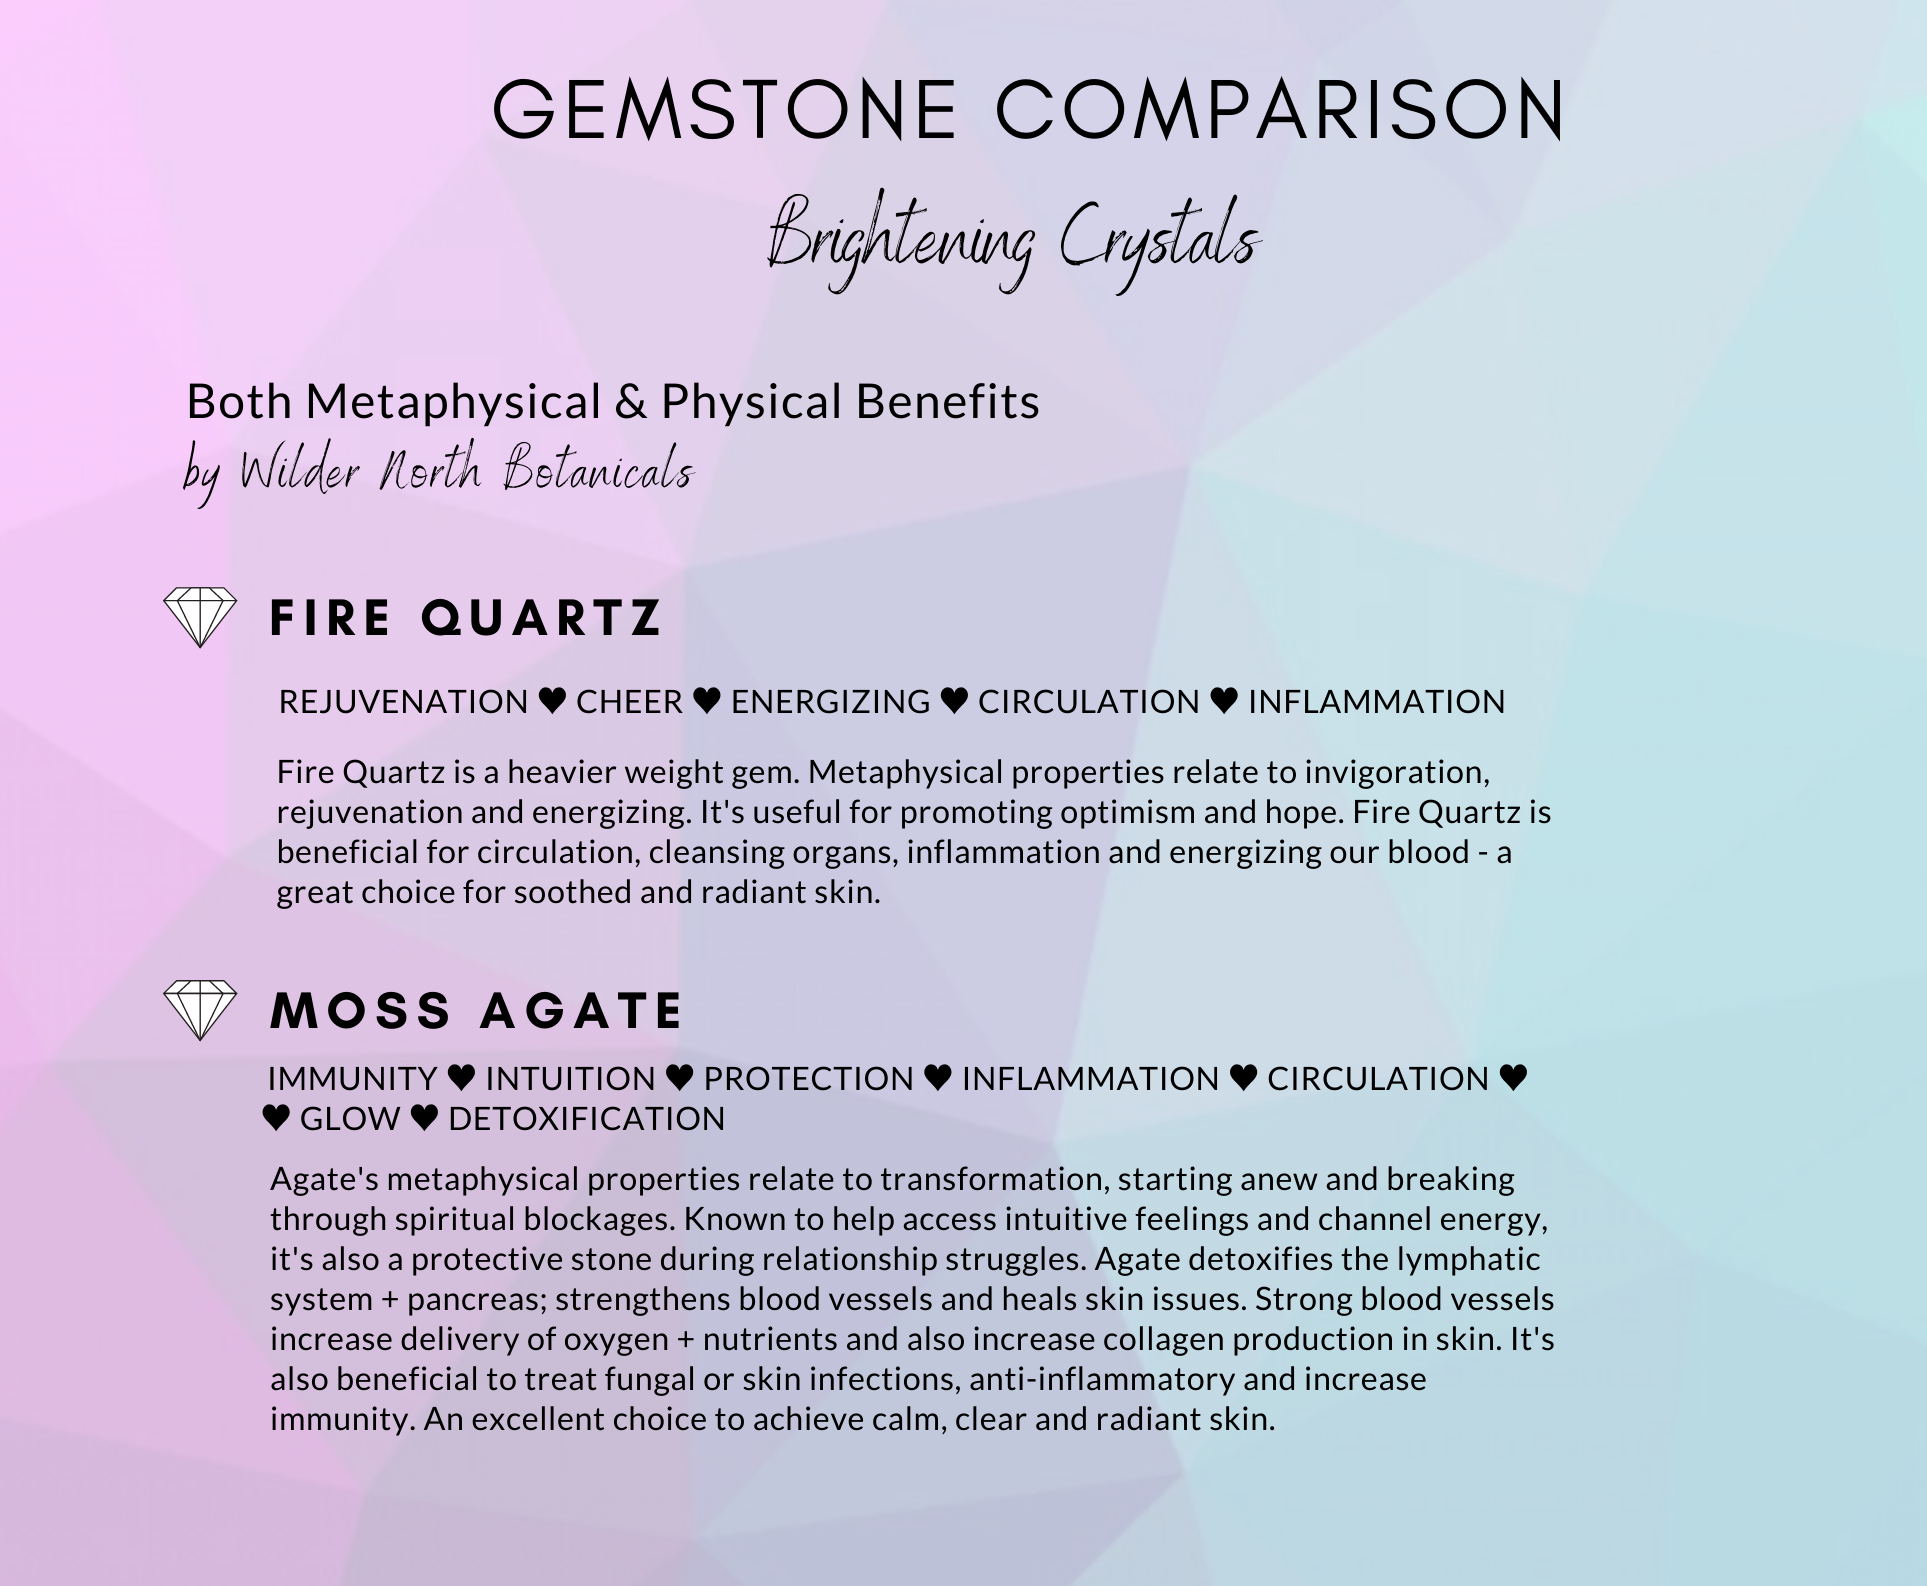 brightening-gemstones-new.png